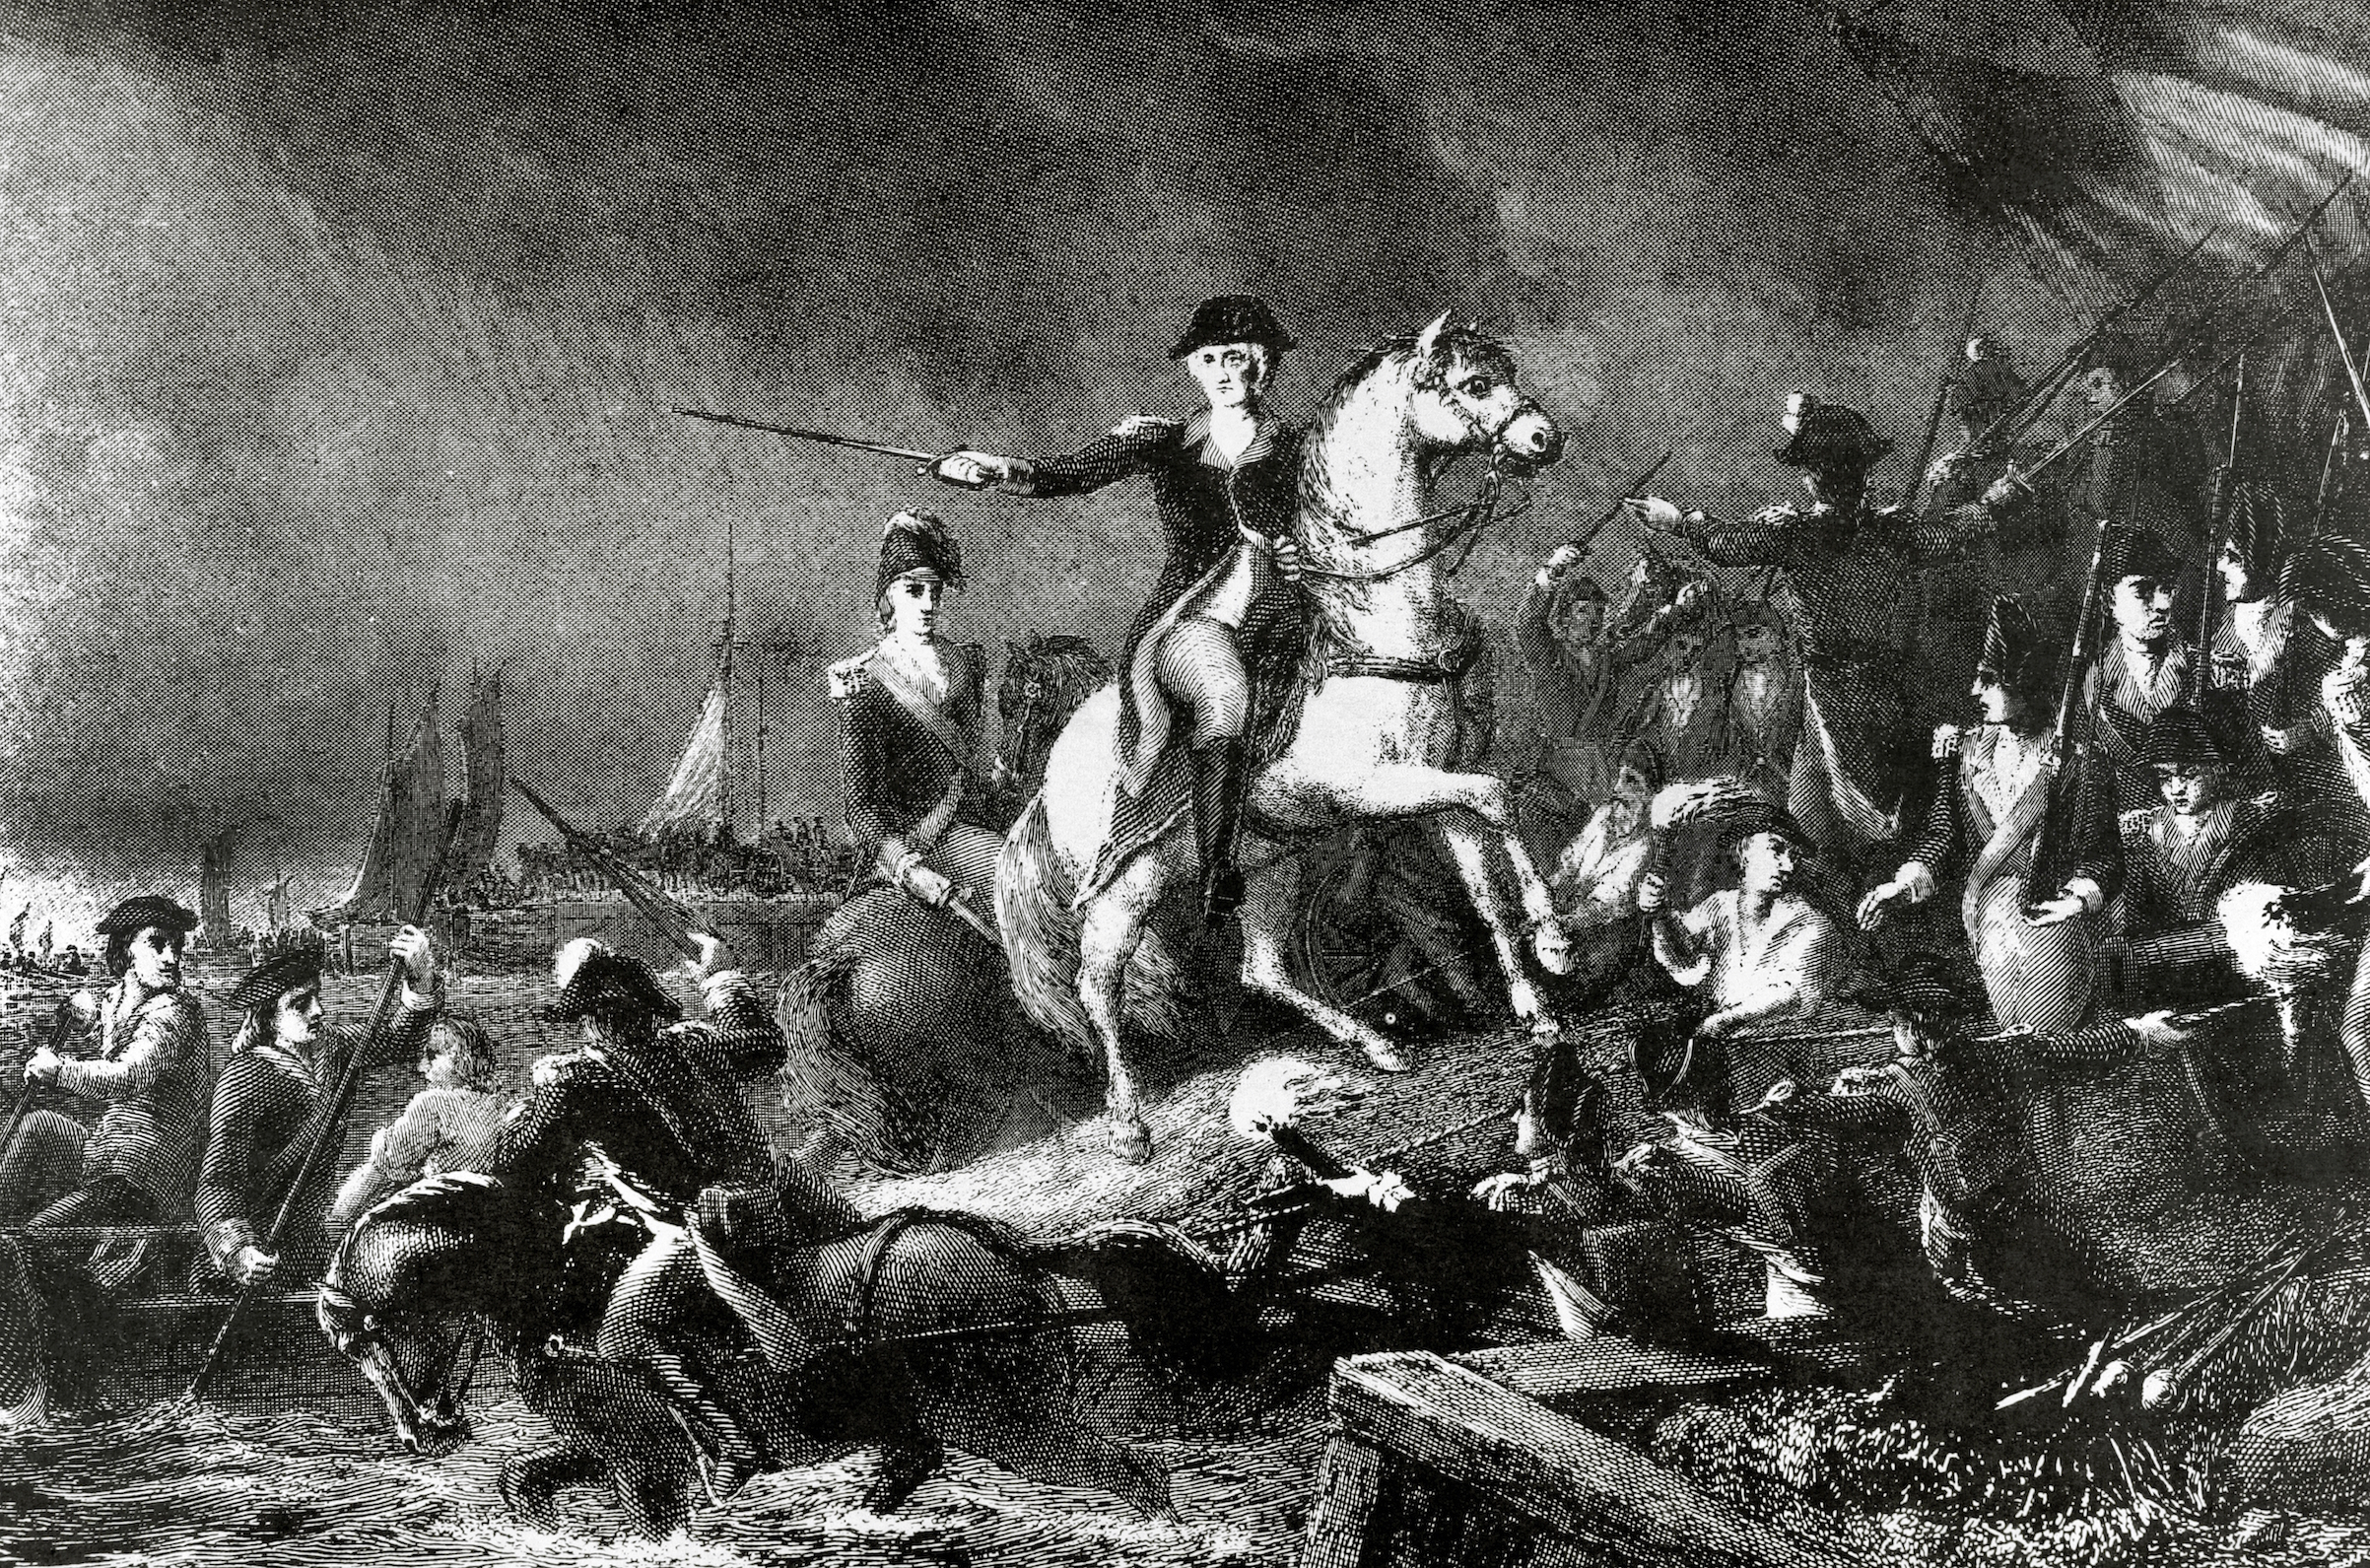 Engraving of the Battle of Long Island or Battle of Brooklyn( August 27, 1776): Withdrawal of the Continental Army of George Washington.